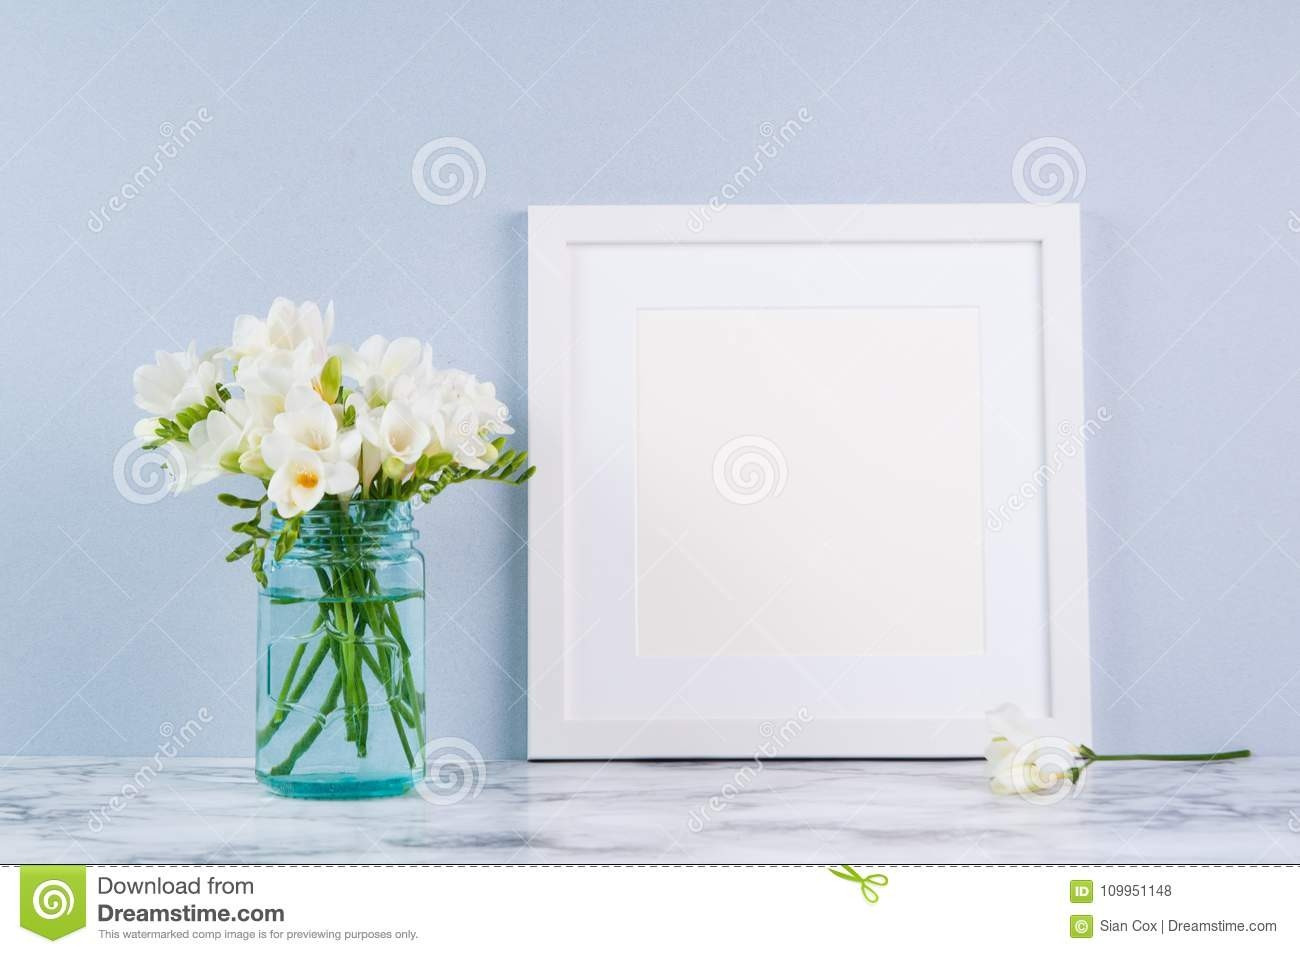 champagne colored vases of 27 beautiful flower arrangements square vases flower decoration ideas within flower arrangements square vases luxury frame mockup stock photo image of mock fressia blue